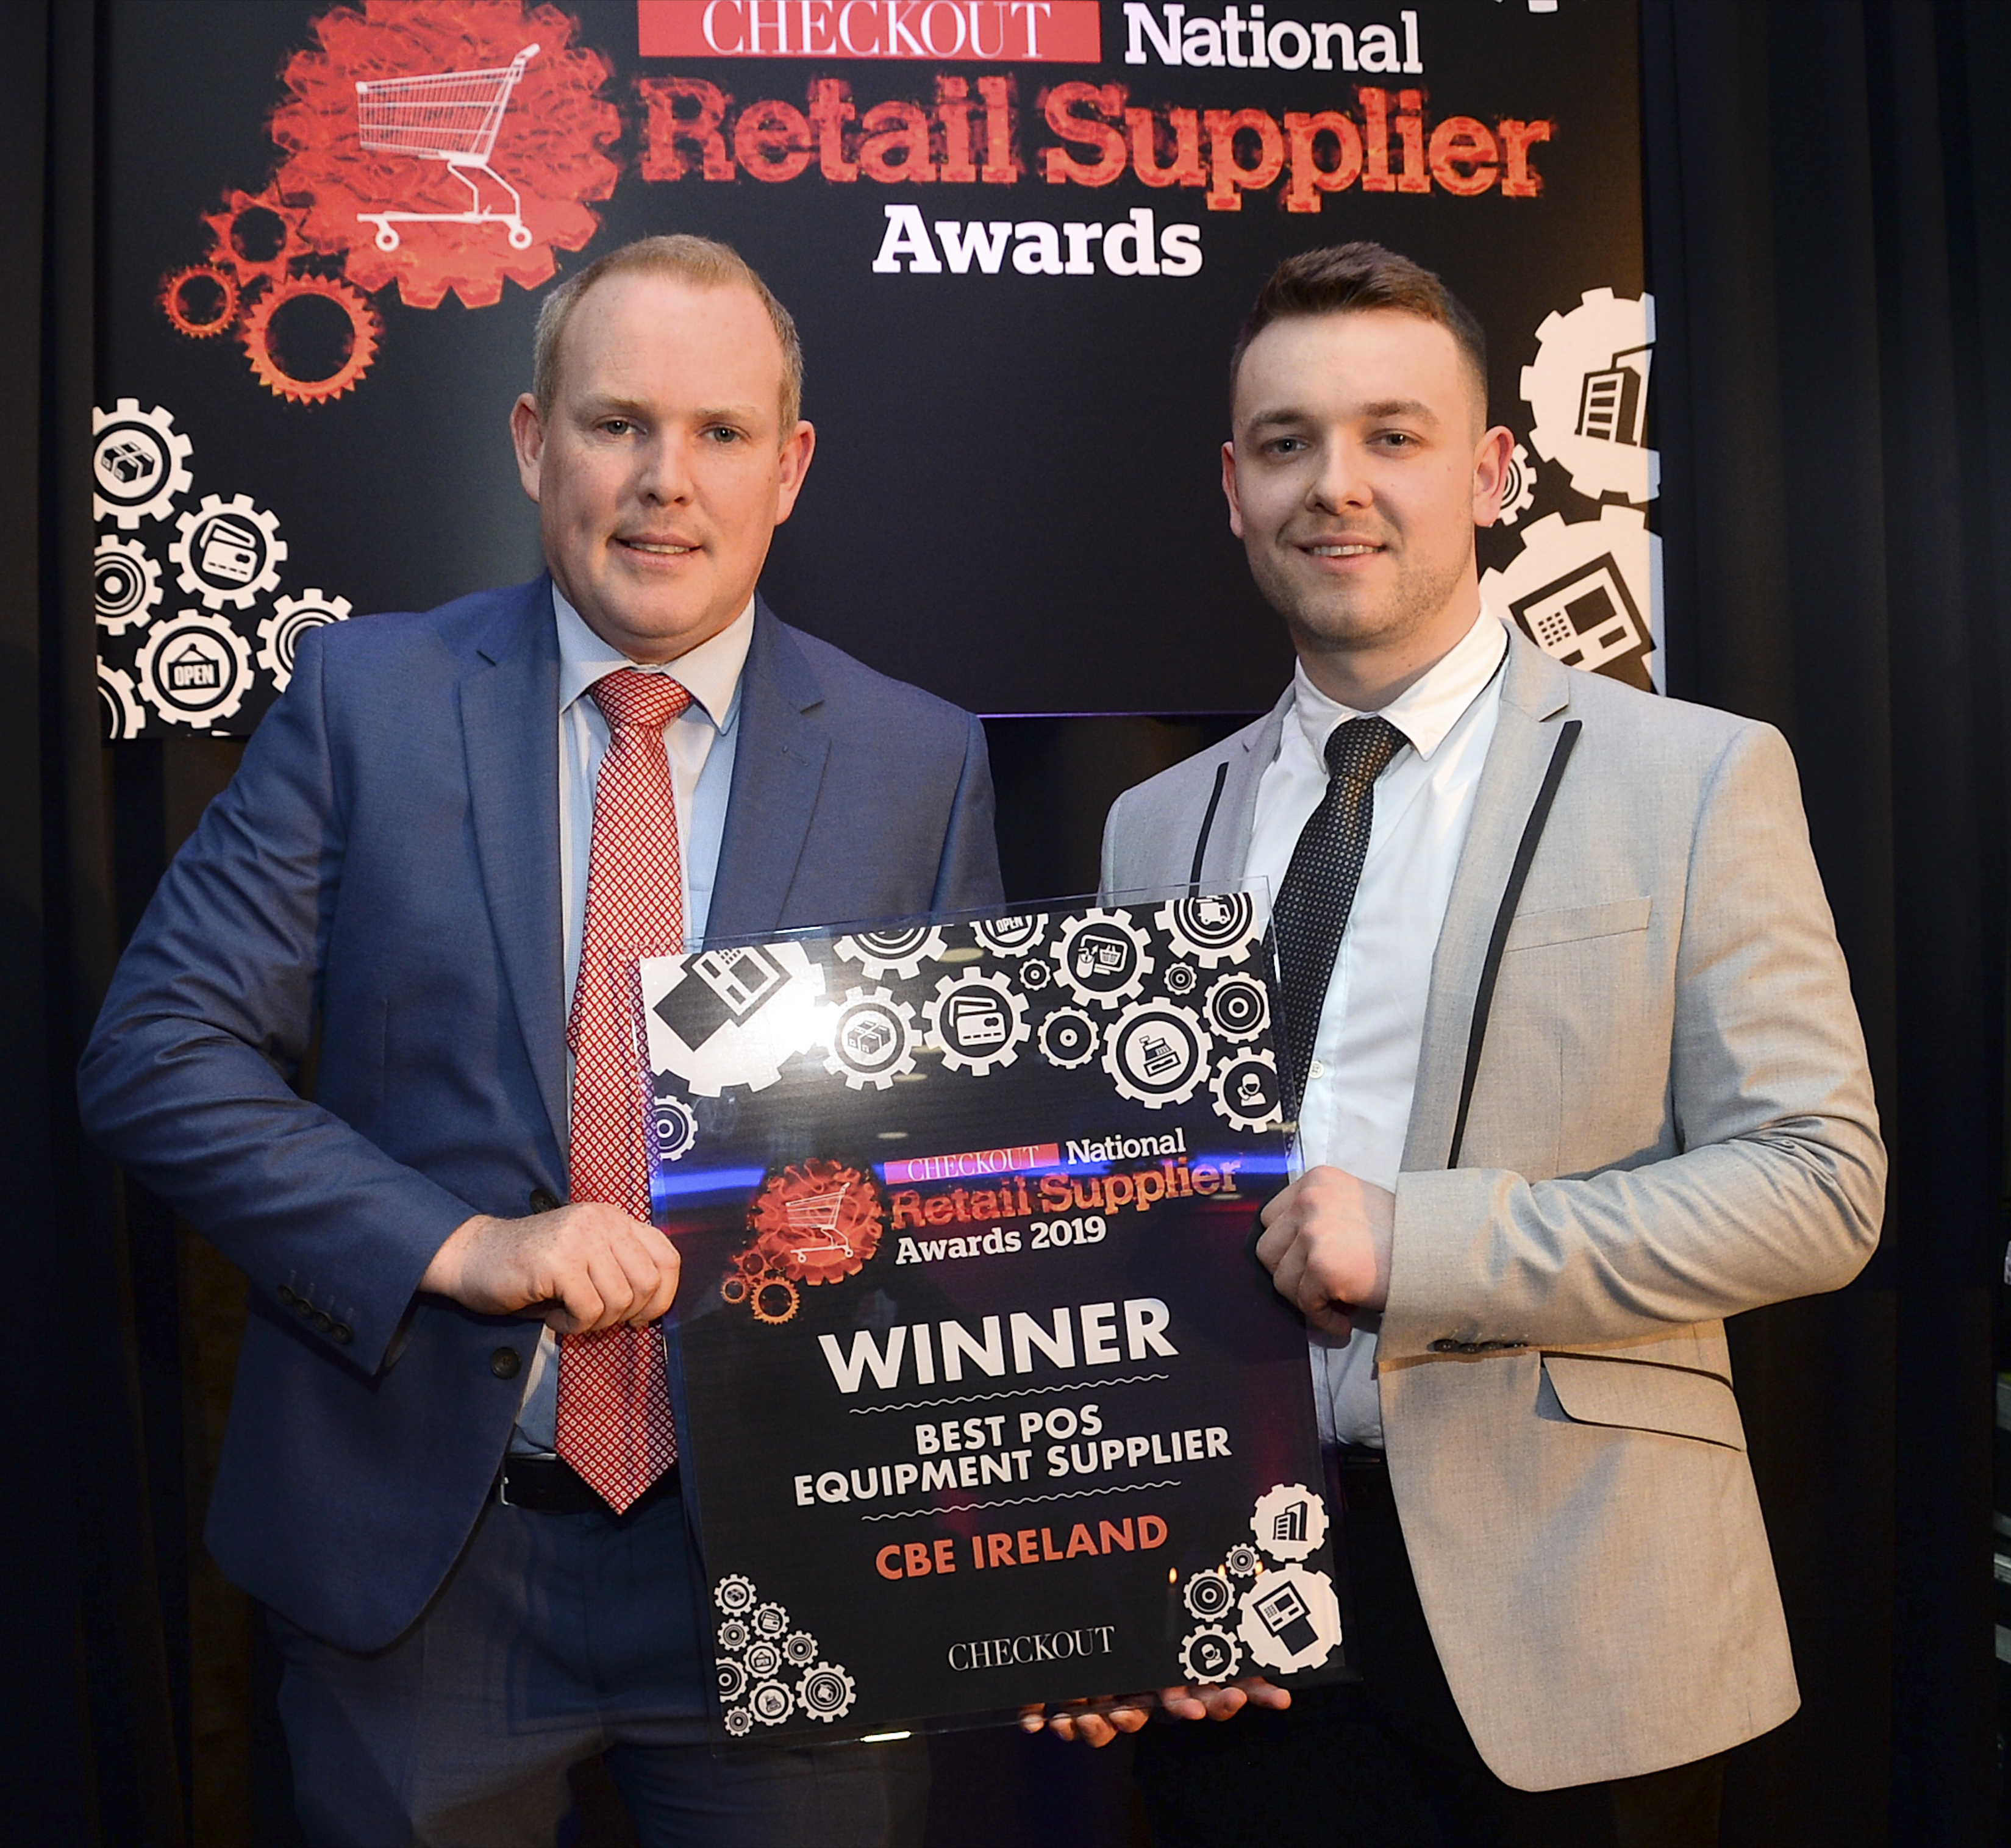 CBE win 'Best POS Equipment Supplier' Award